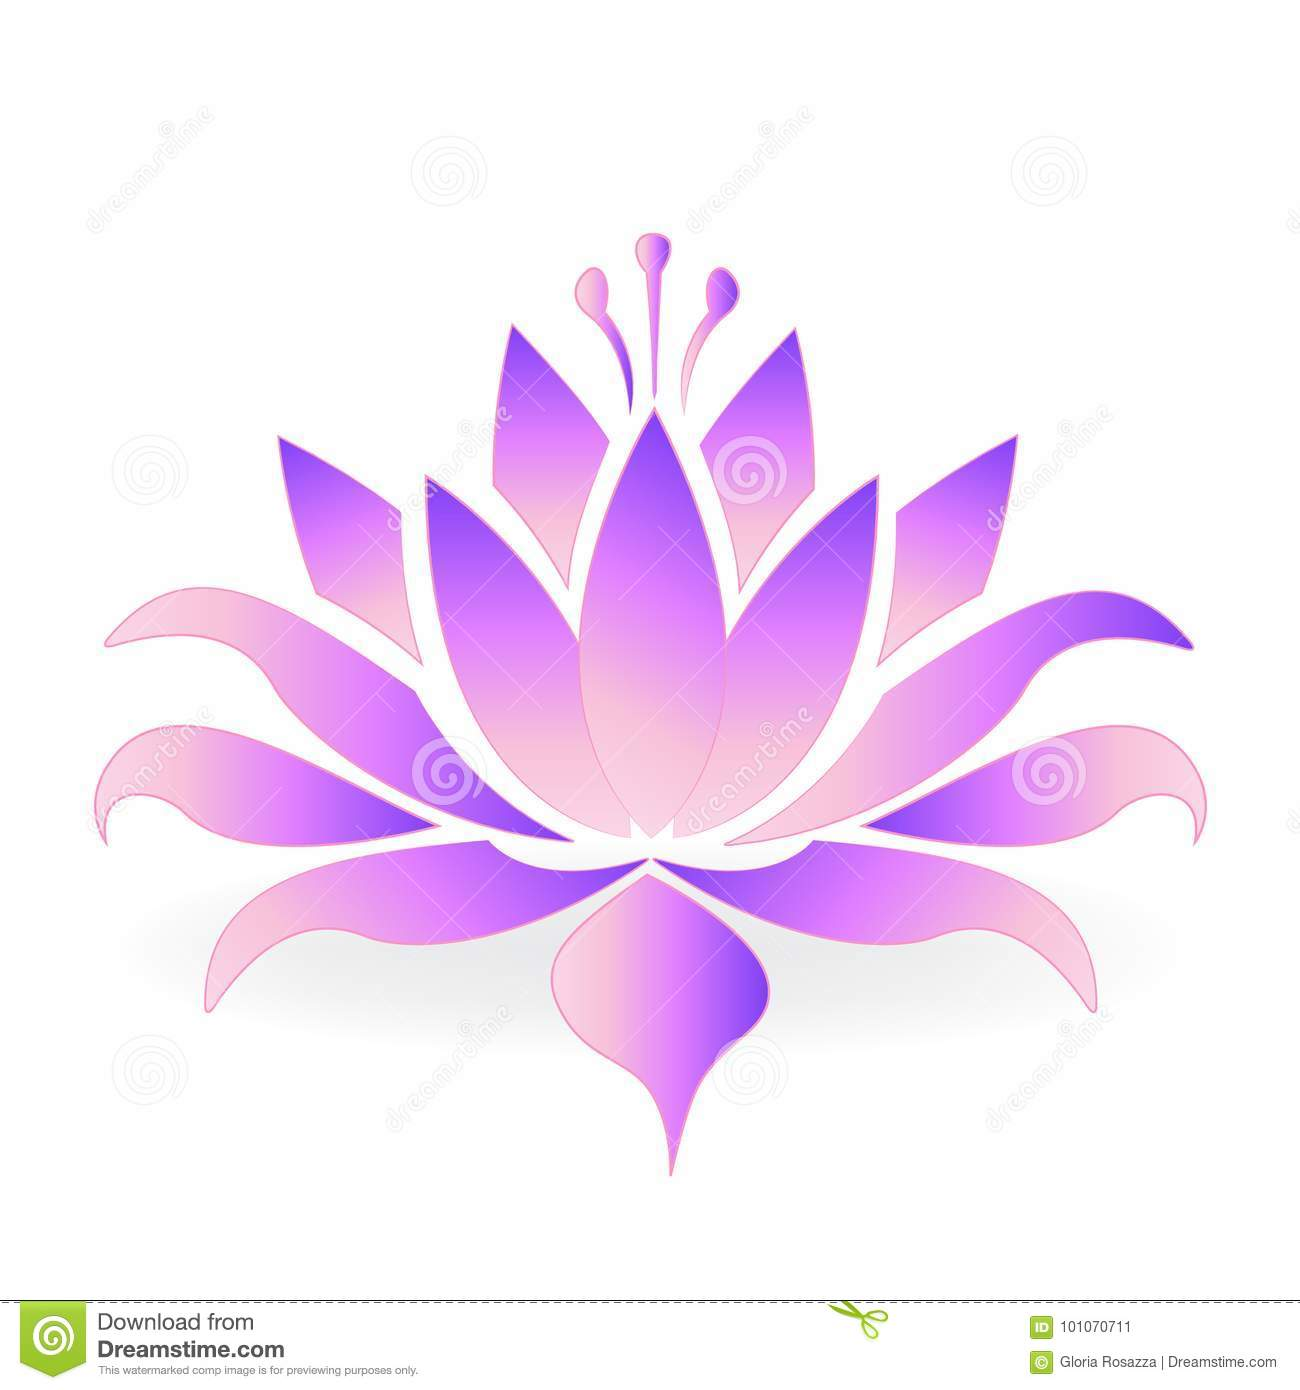 Logo Pourpre De Fleur De Lotus Illustration De Vecteur